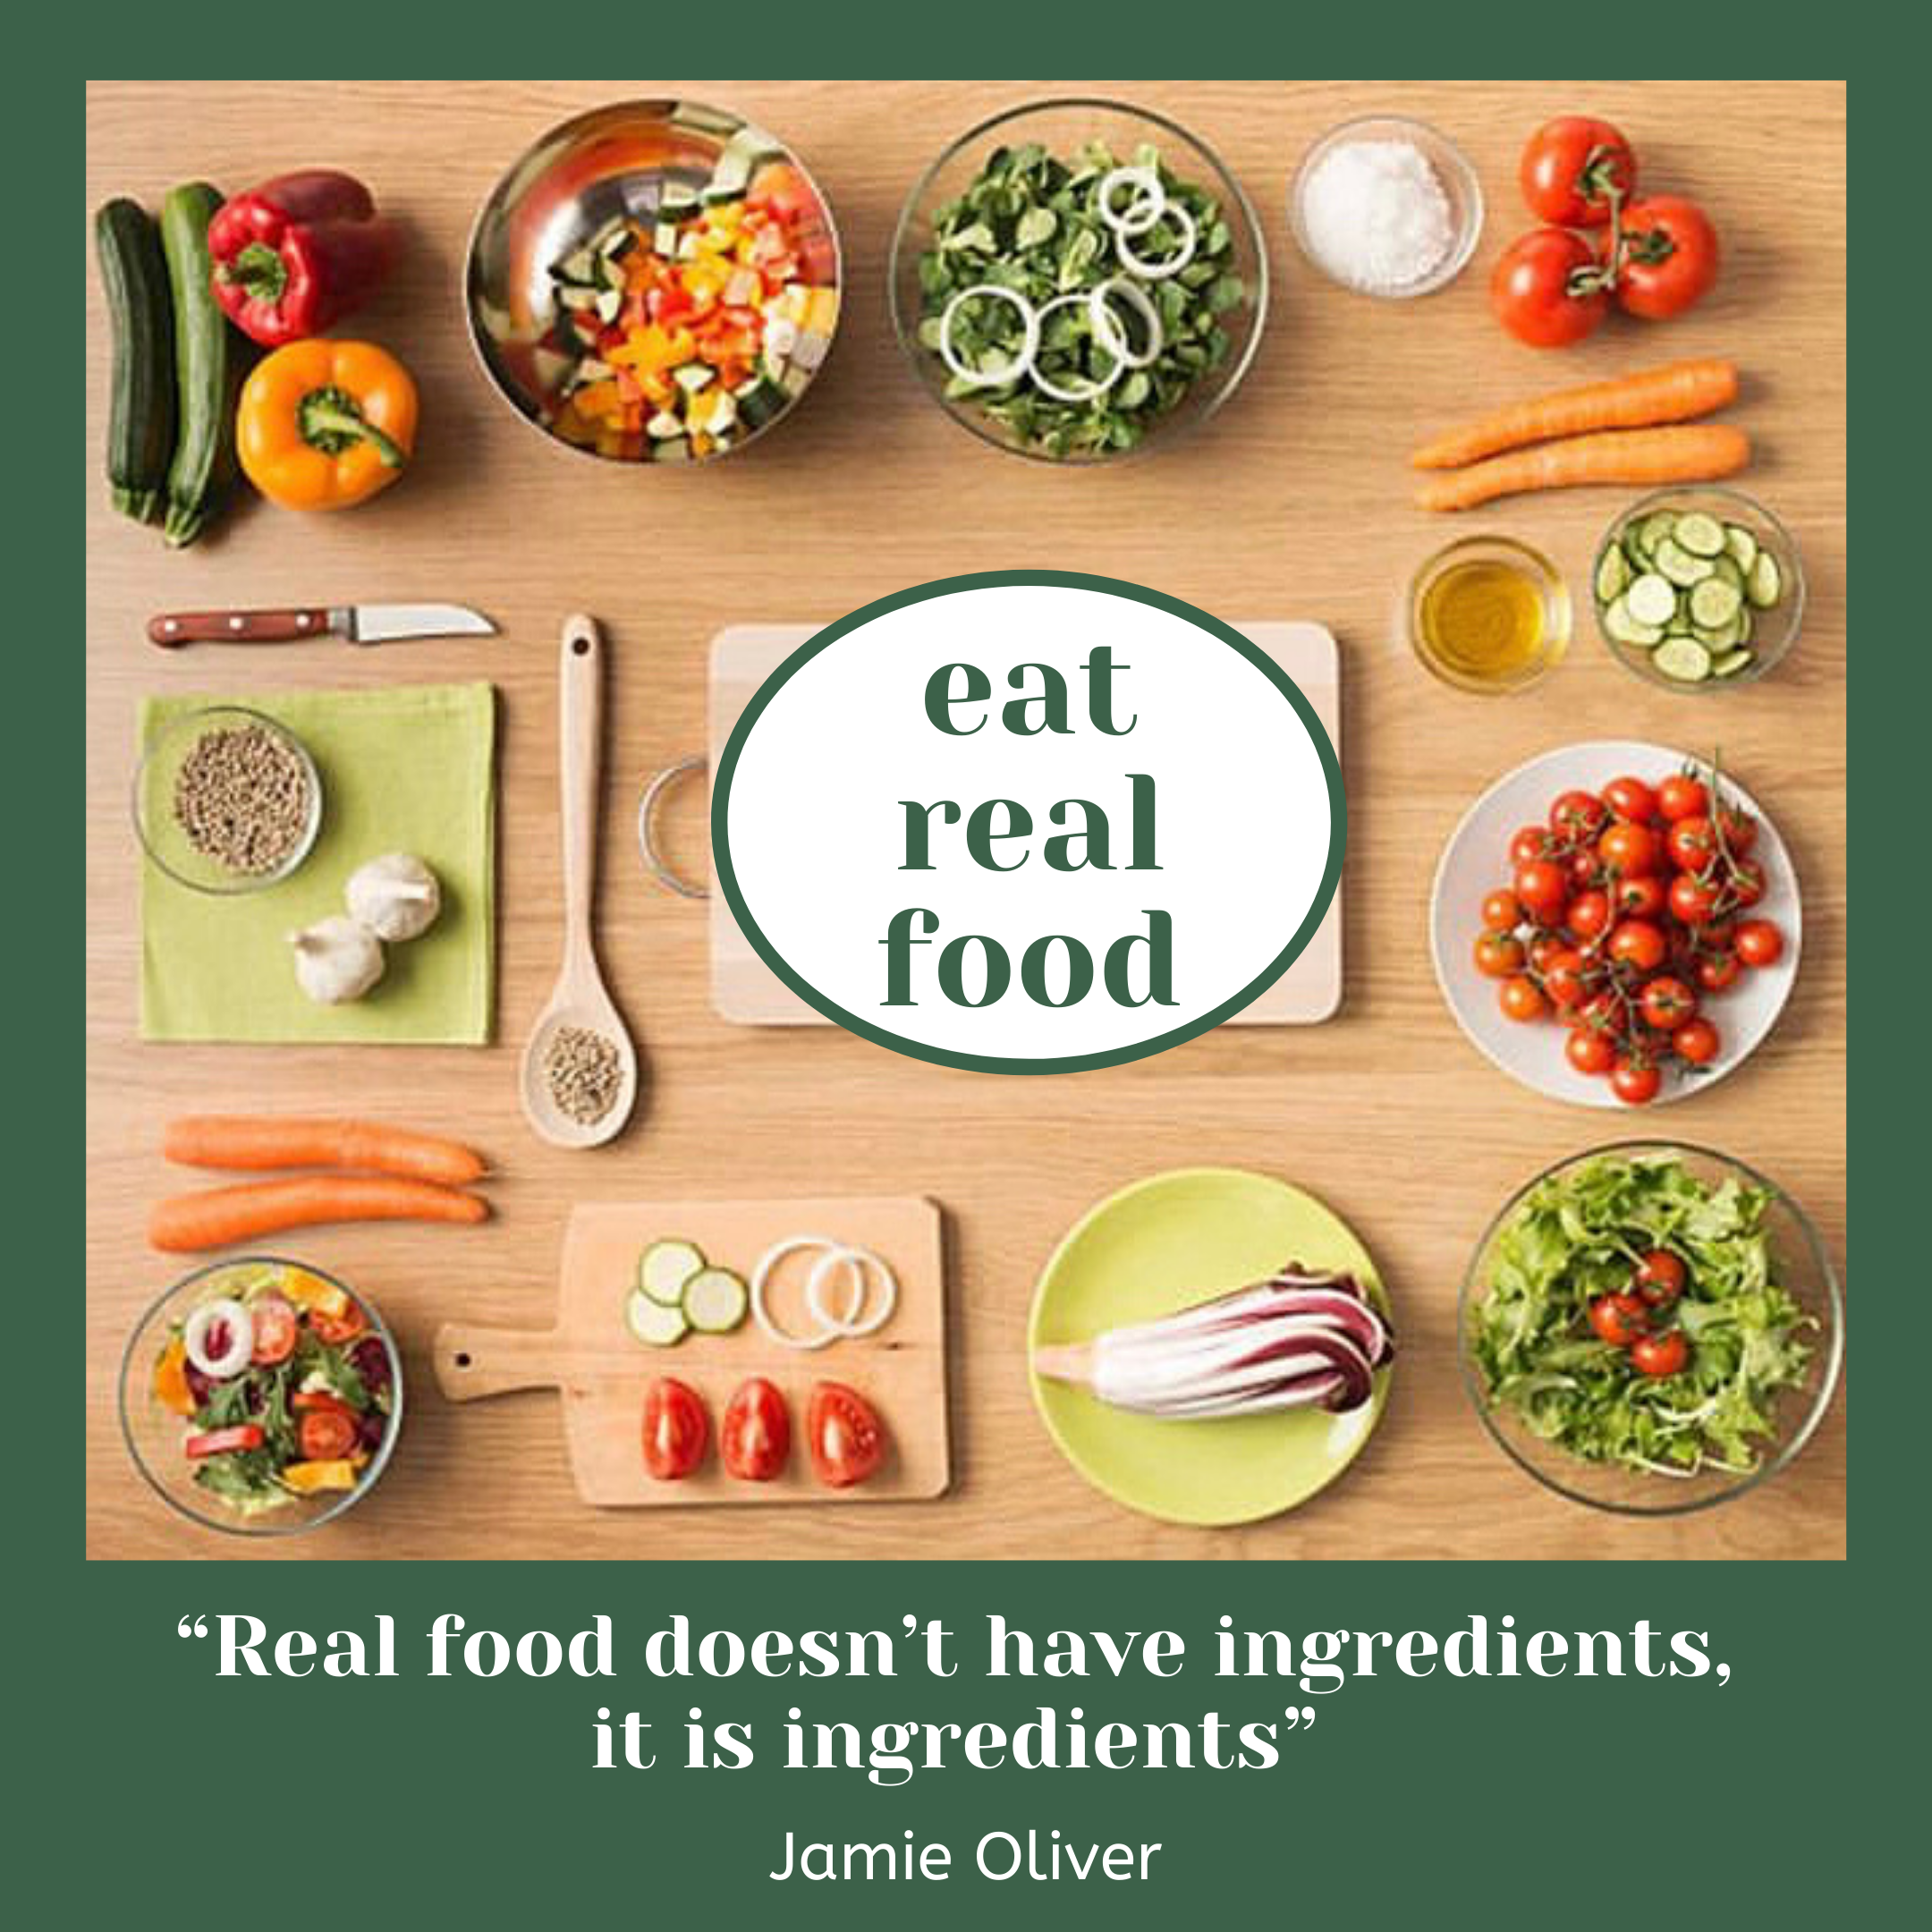 Importance of Eating Real Food